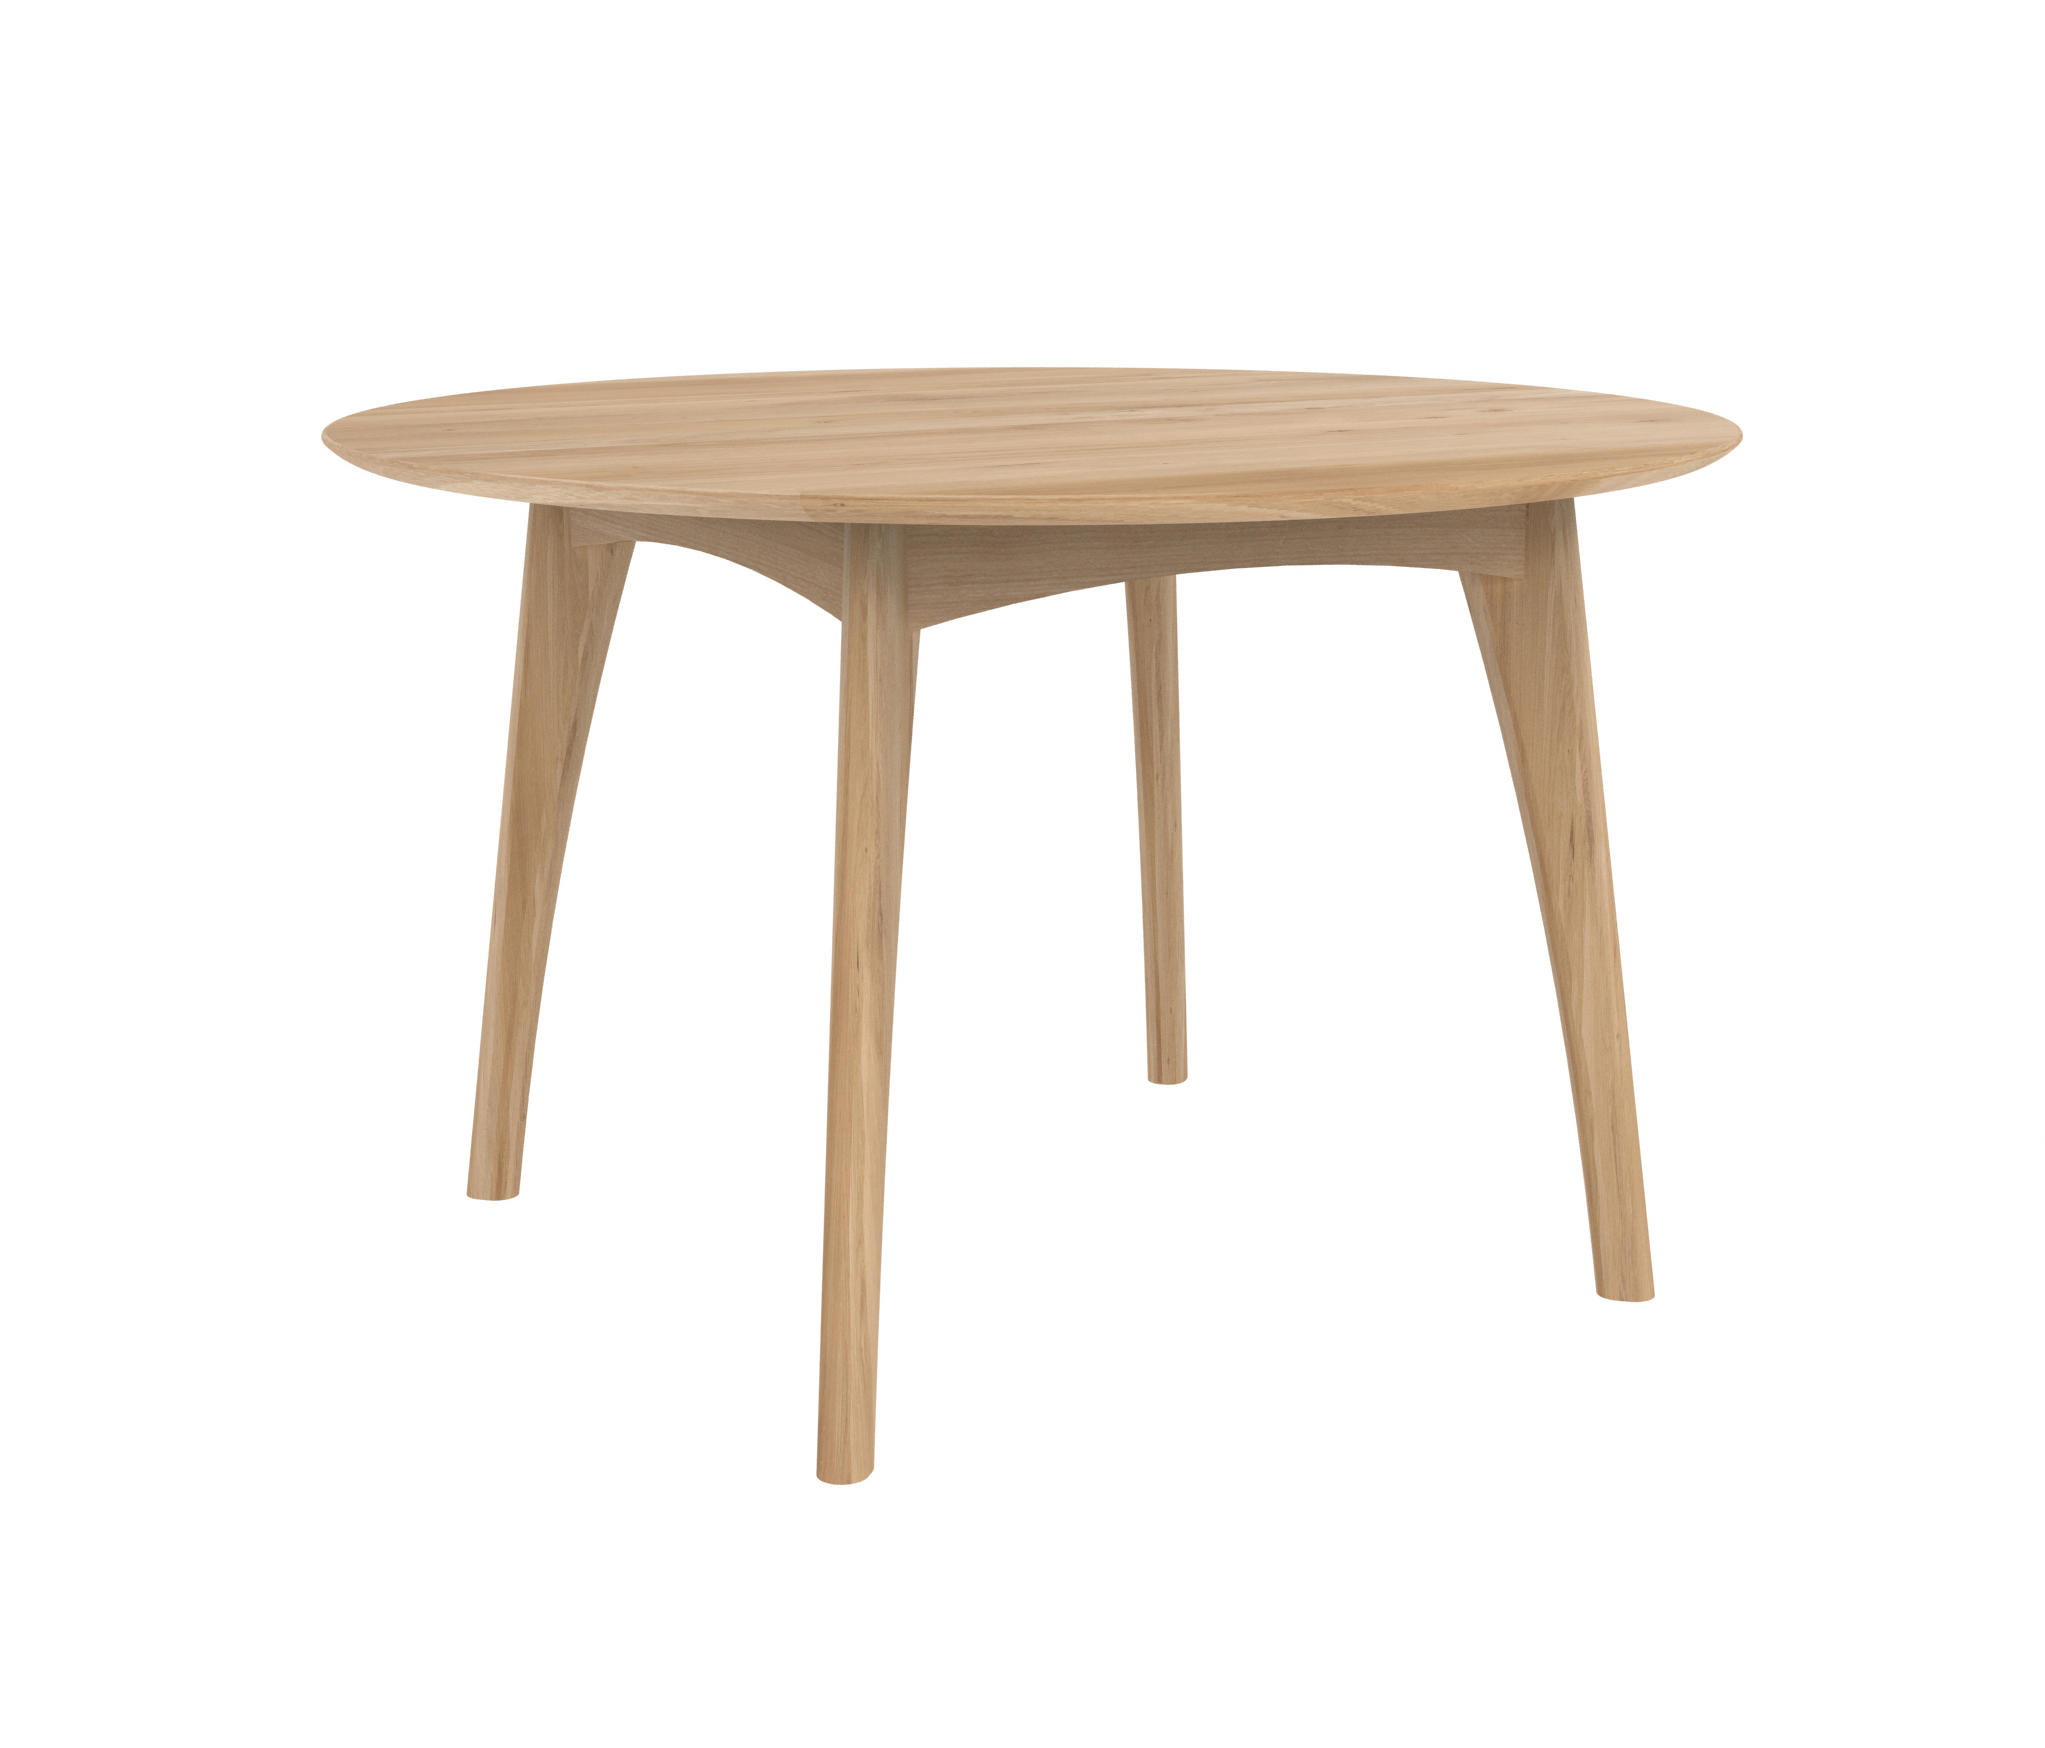 OAK OSSO ROUND DINING TABLE Restaurant tables from Ethnicraft